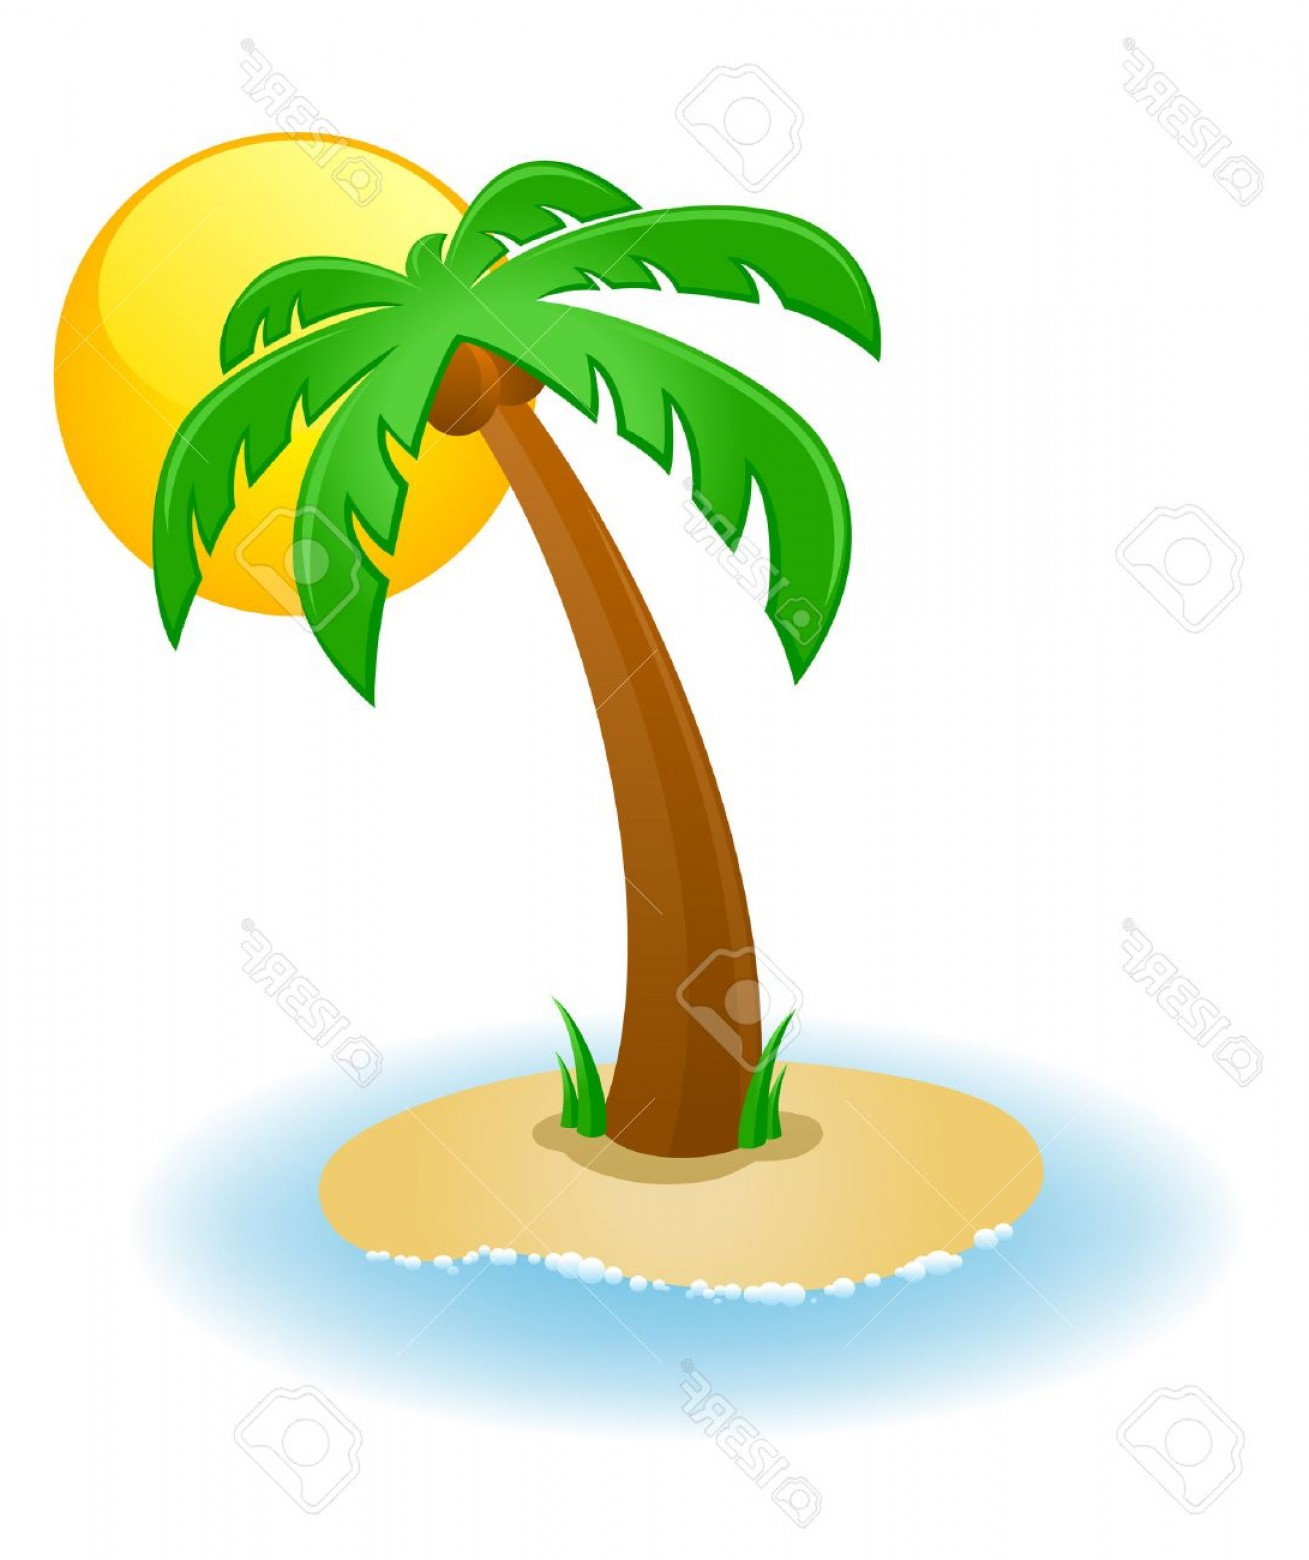 Palm Tree Clip Art Vector: Photovector Illustration Of A Palm Tree On A Small Island